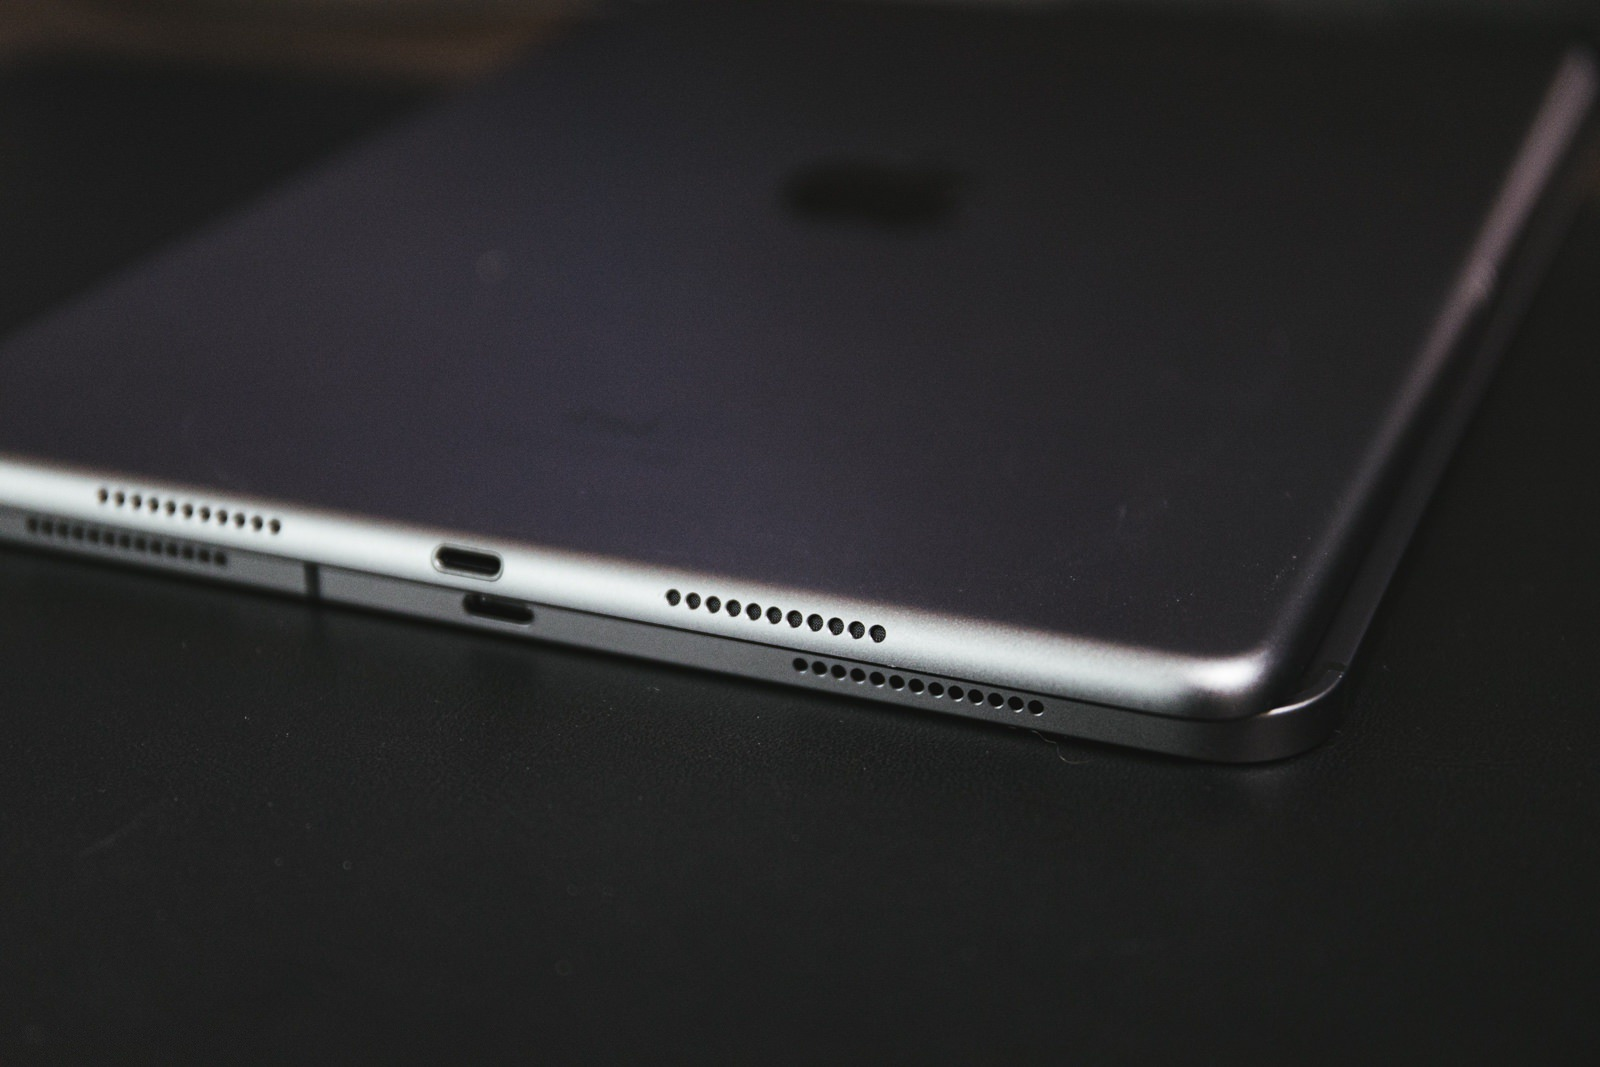 Checking the size fo ipadmini faceid model 05